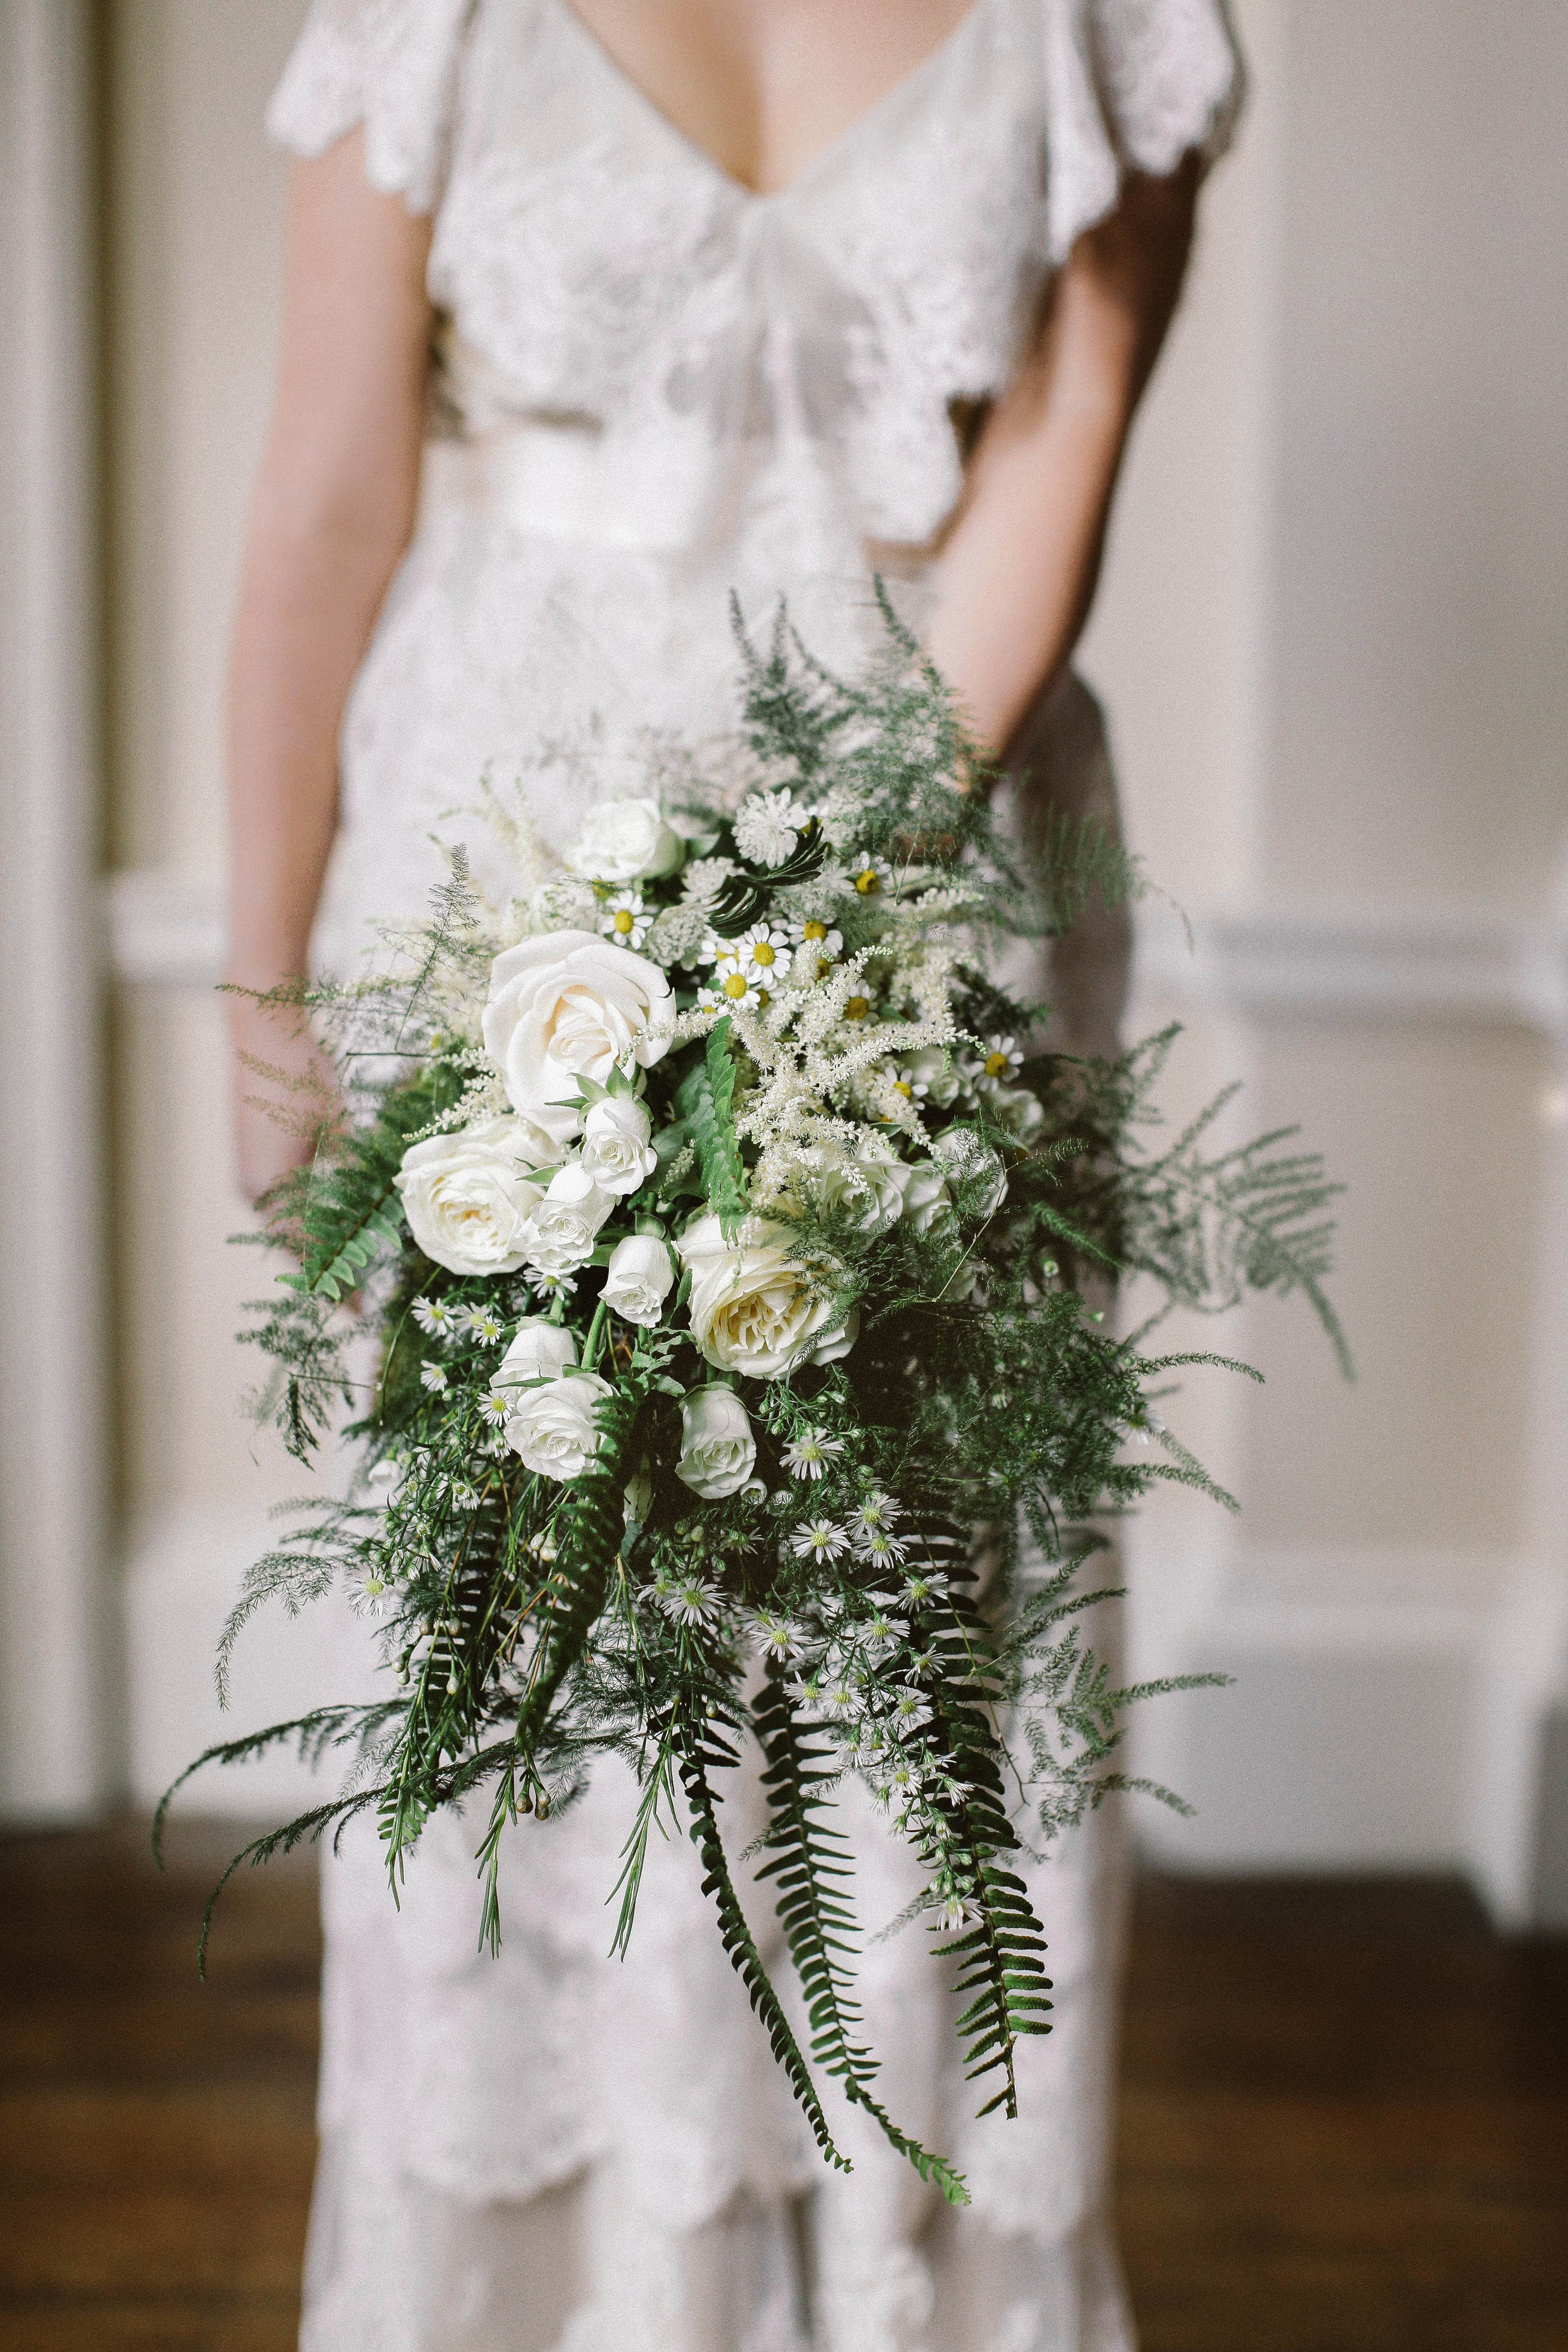 Trailing Fern Wedding Bouquet with Roses and Dasies